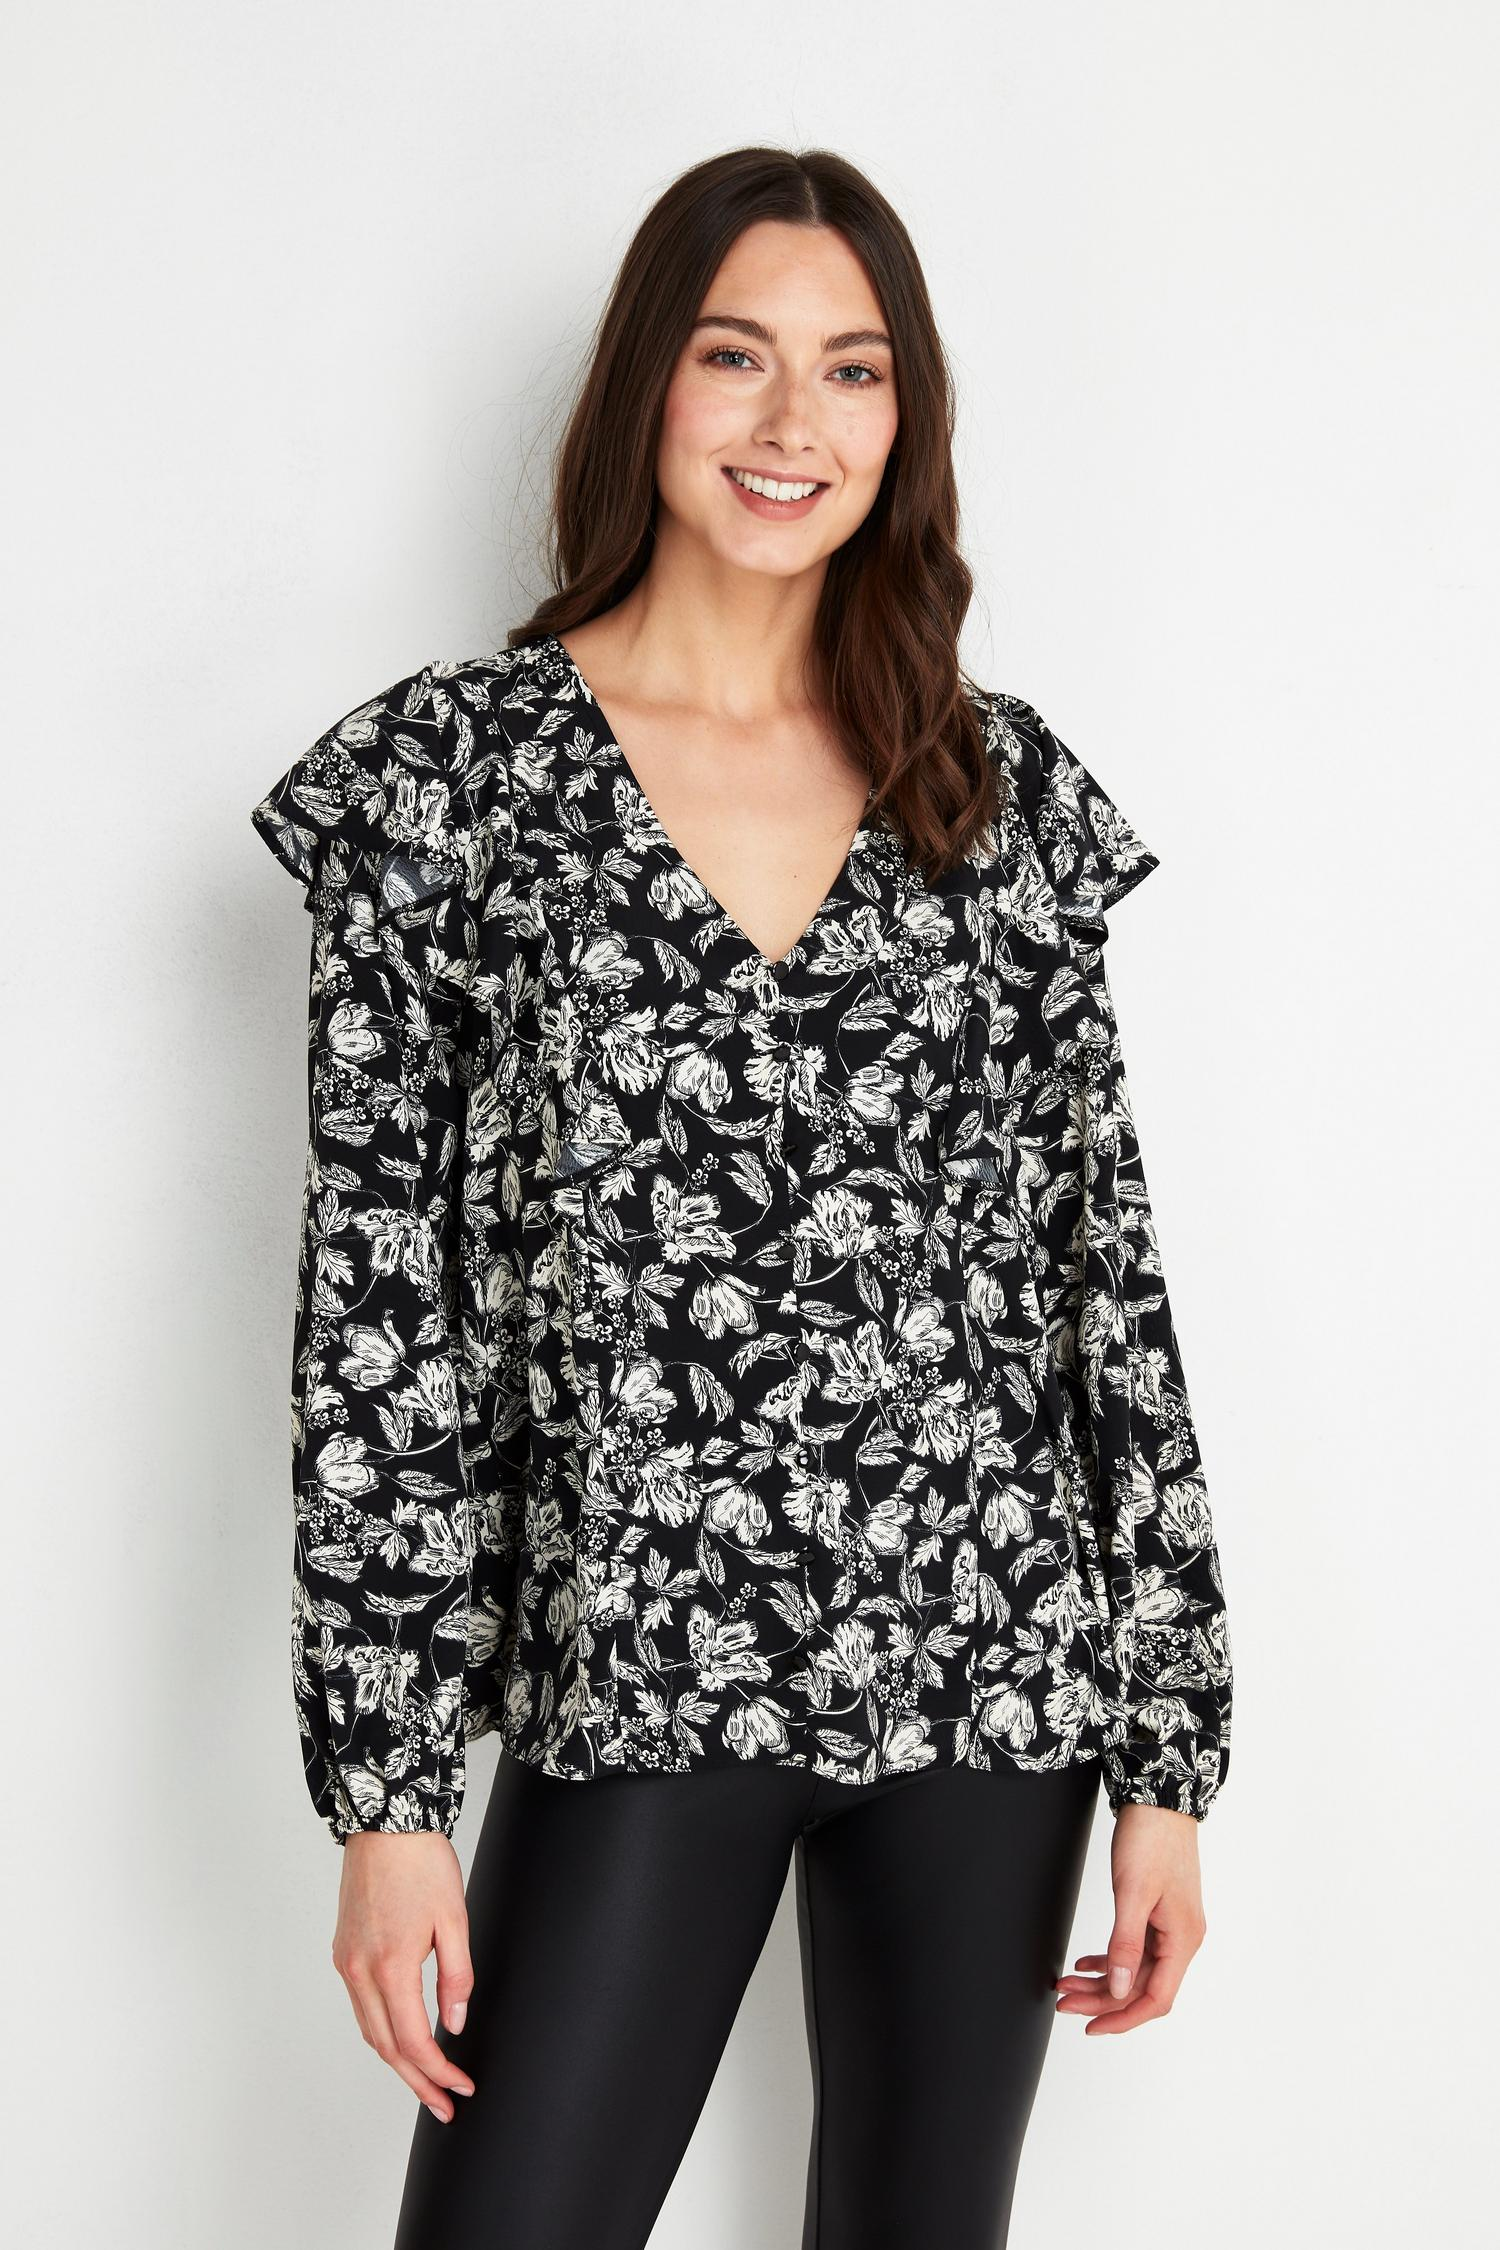 585 Monochrome Floral Print Ruffle Top image number 1